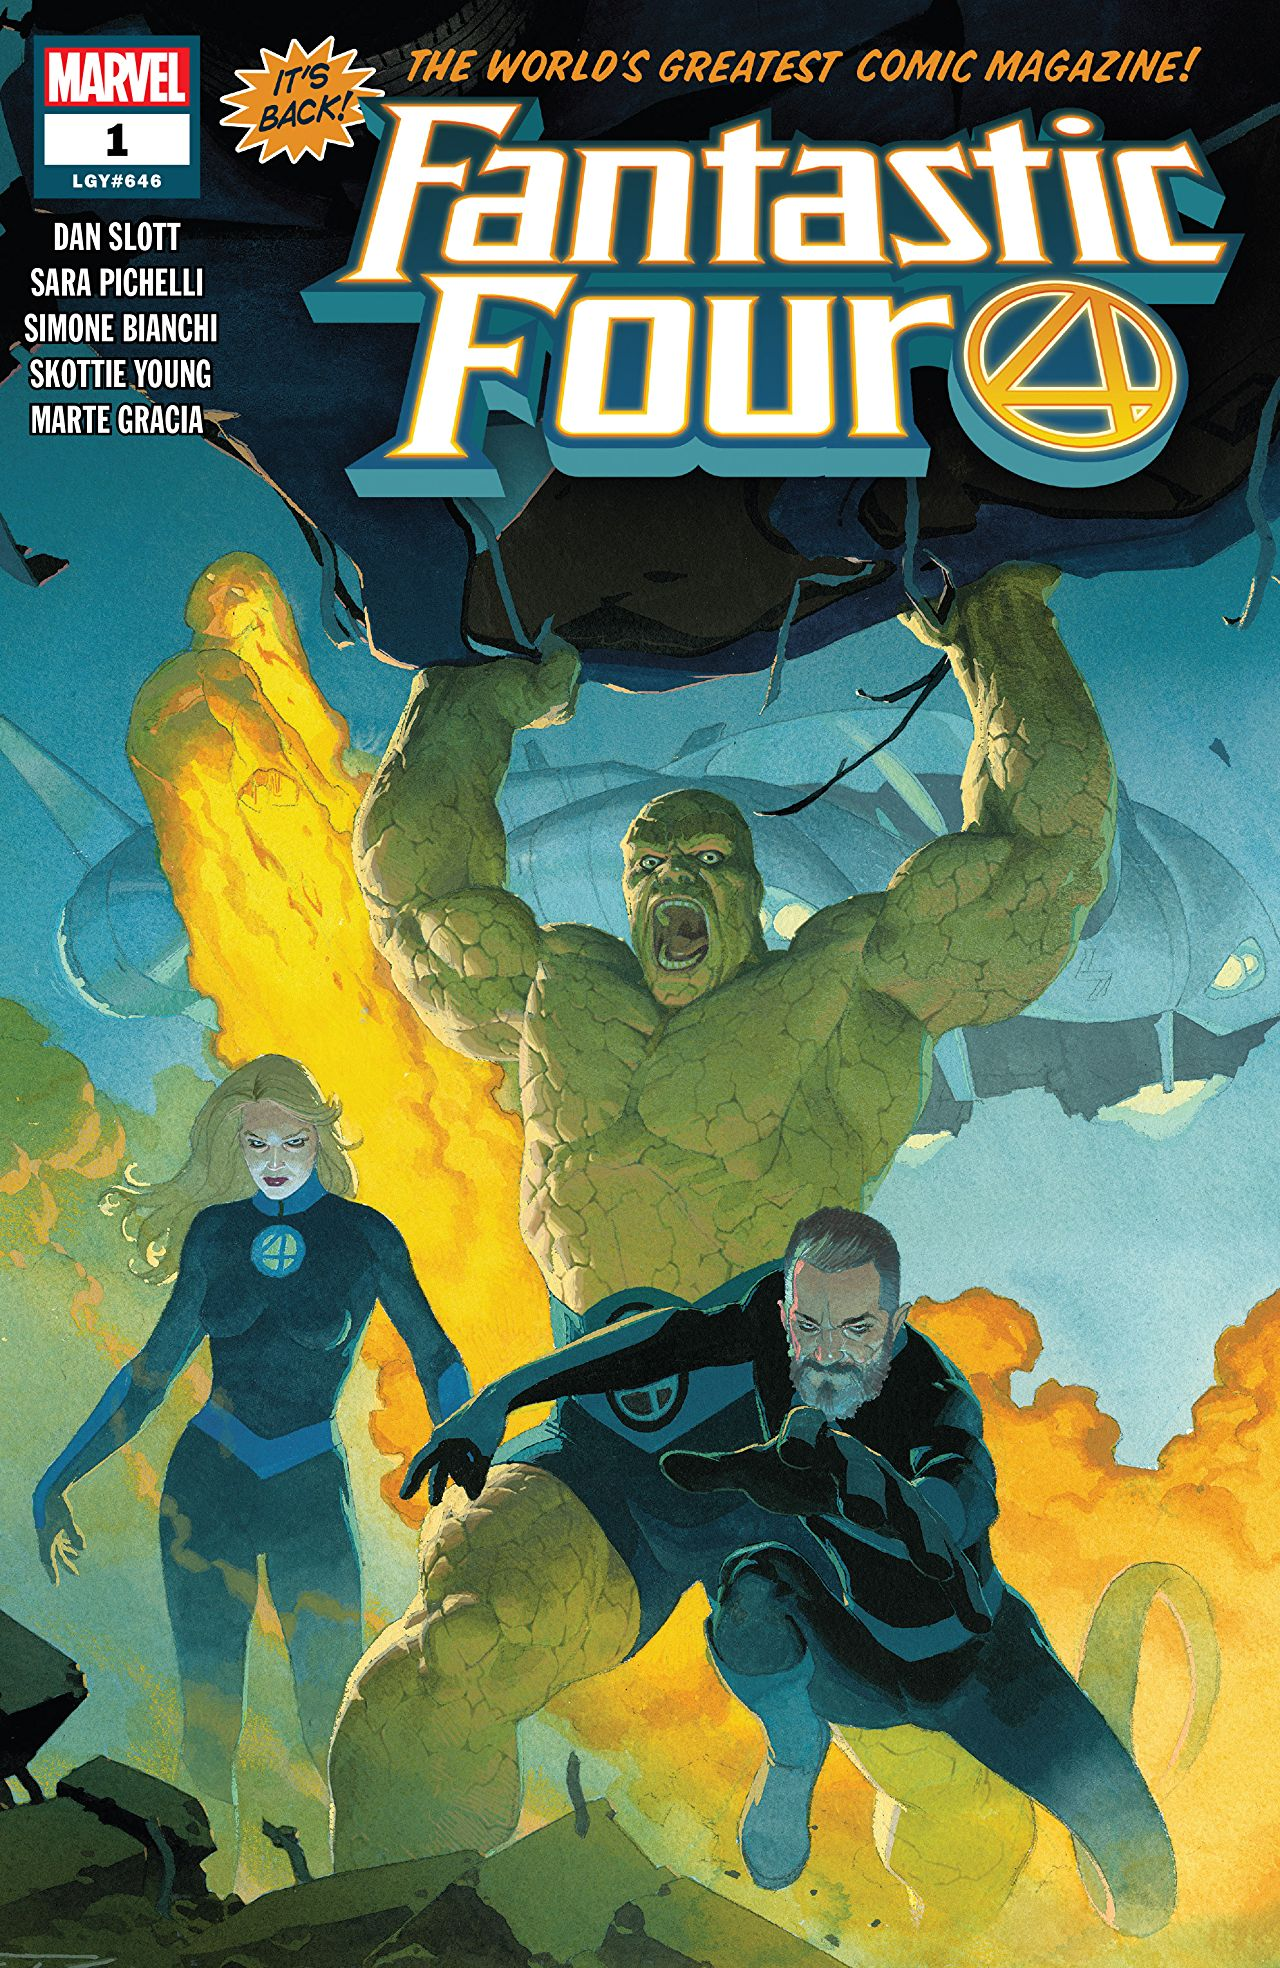 Fantastic Four issue one cover